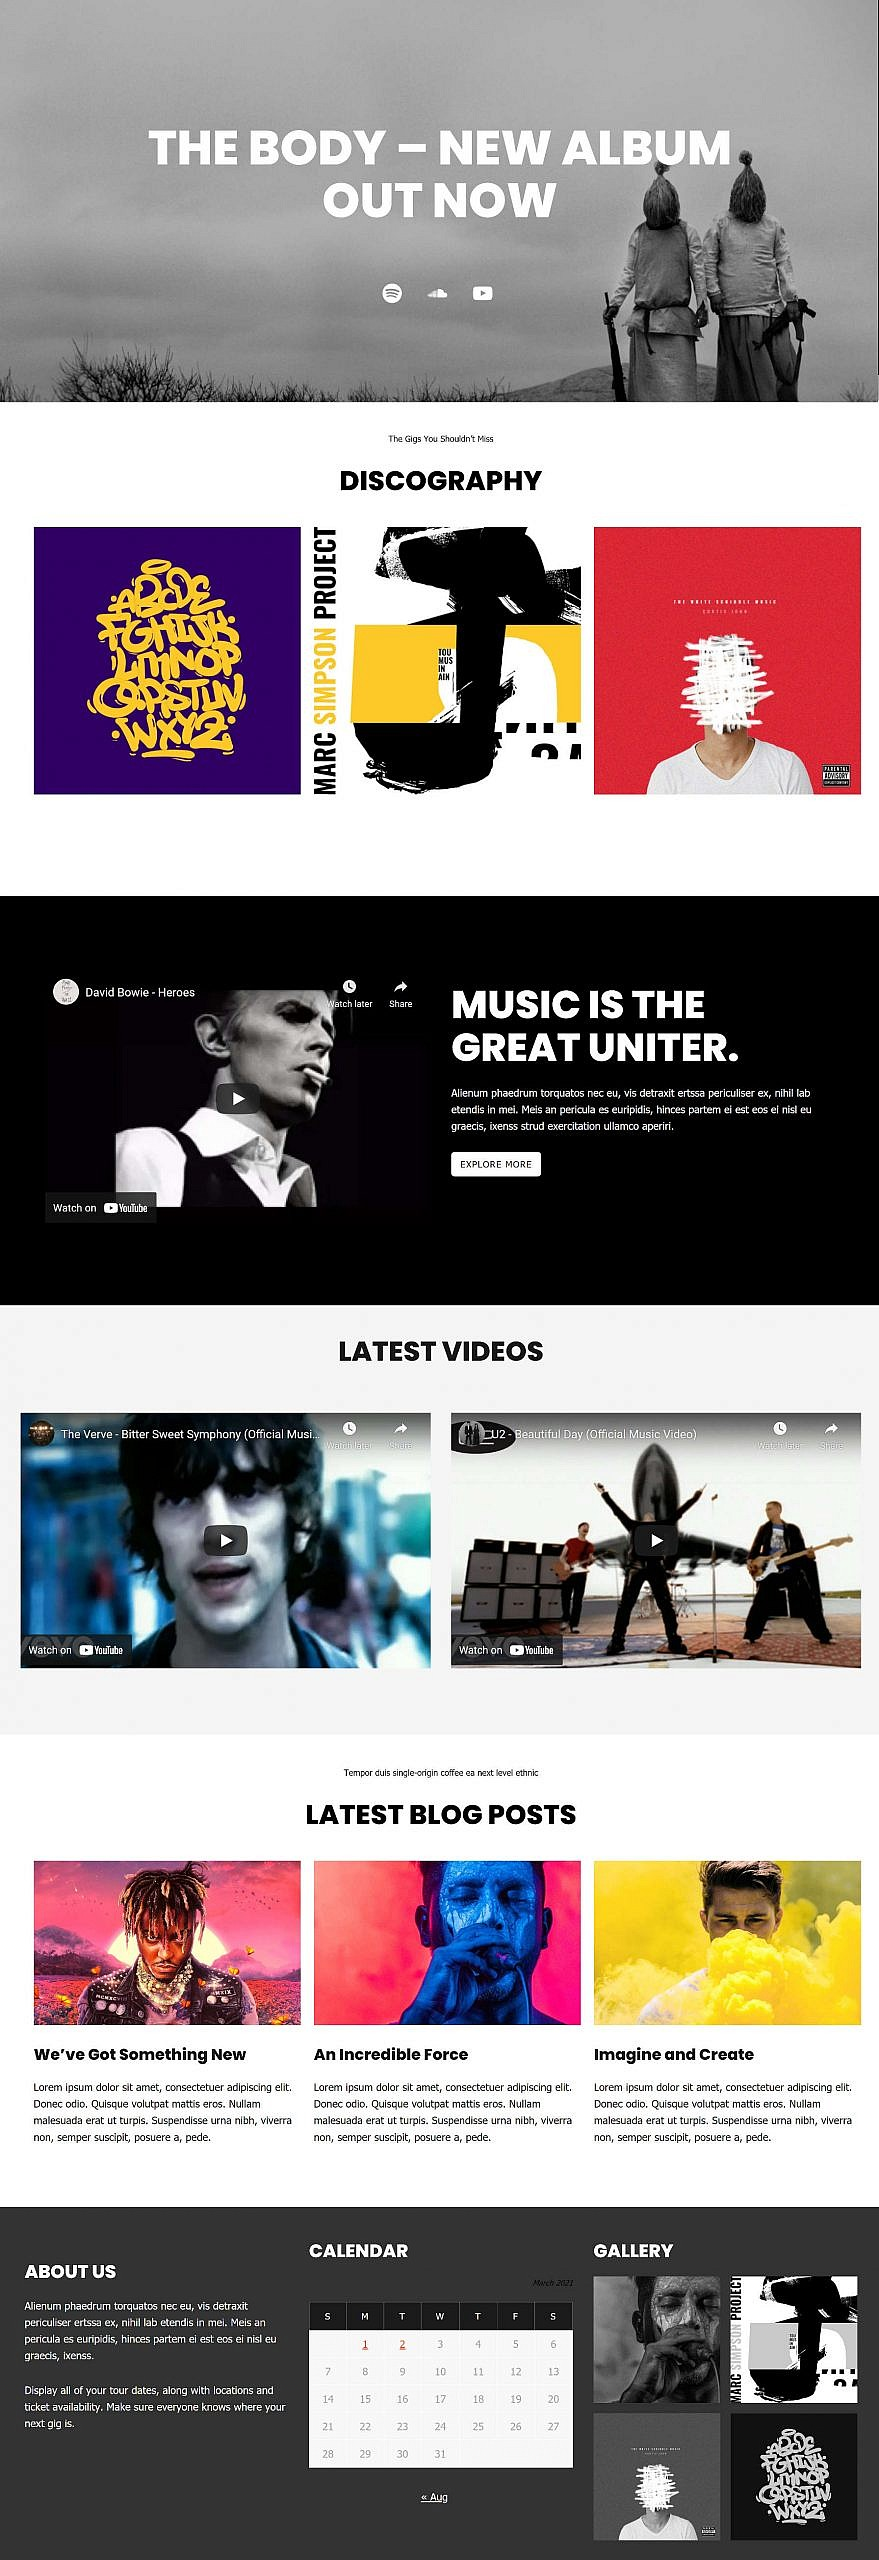 recreating-the-music-artist-wordpress-theme-homepage-with-the-block-editor-1 Recreating the Music Artist WordPress Theme Homepage With the Block Editor